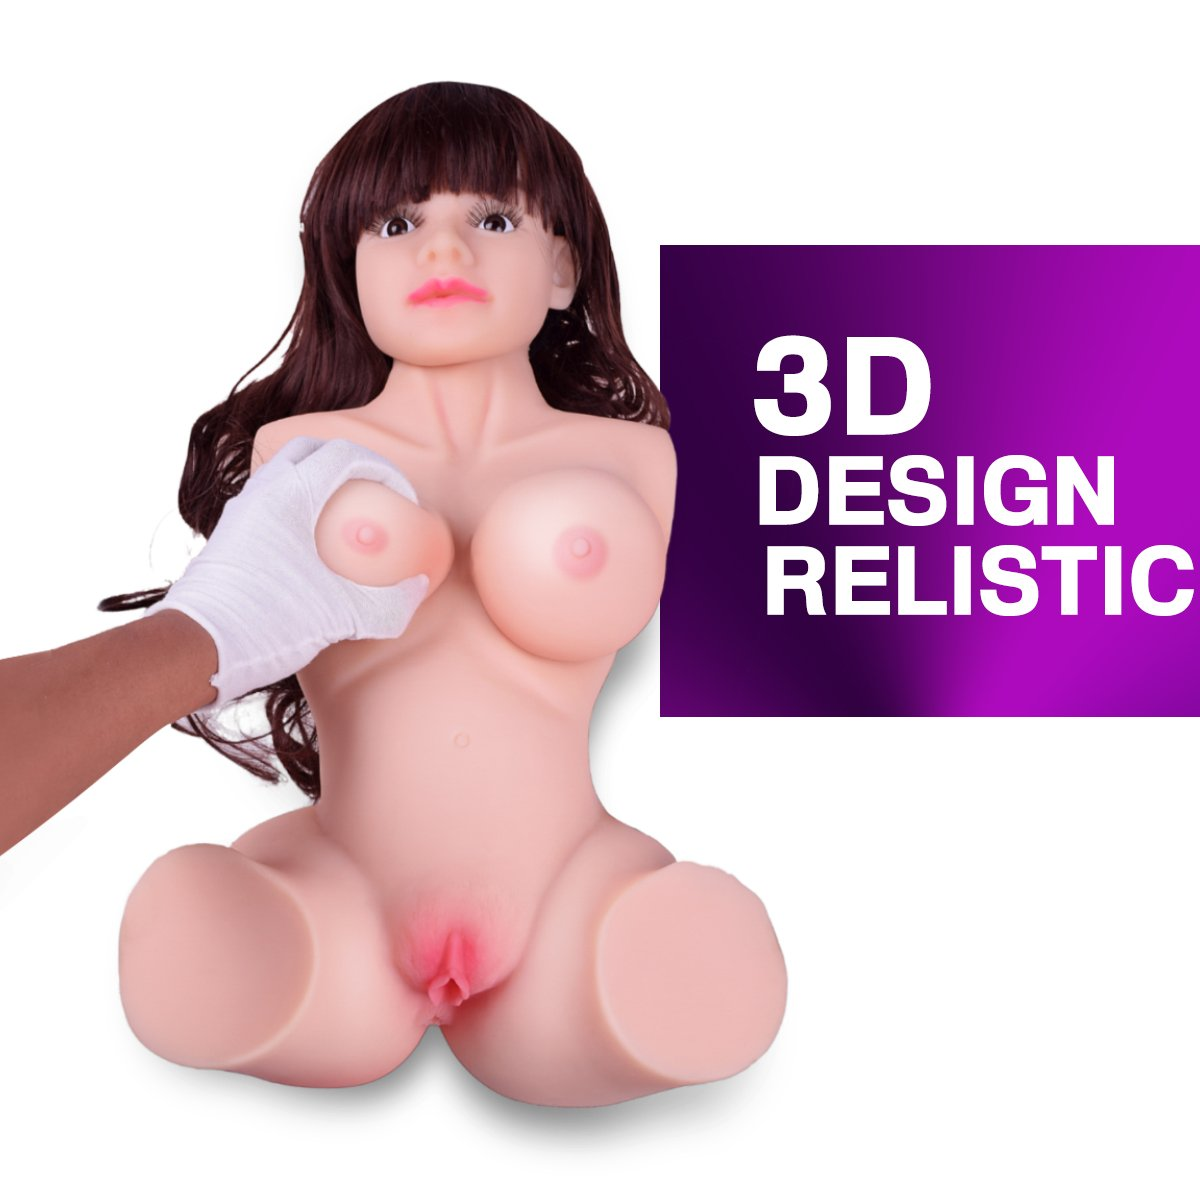 Fleshlike Skin Lifelike Solid Torso Real Doll Head Realistic Men's Adult Toys Fun 3 Channels Toy by HS-JT (Image #6)